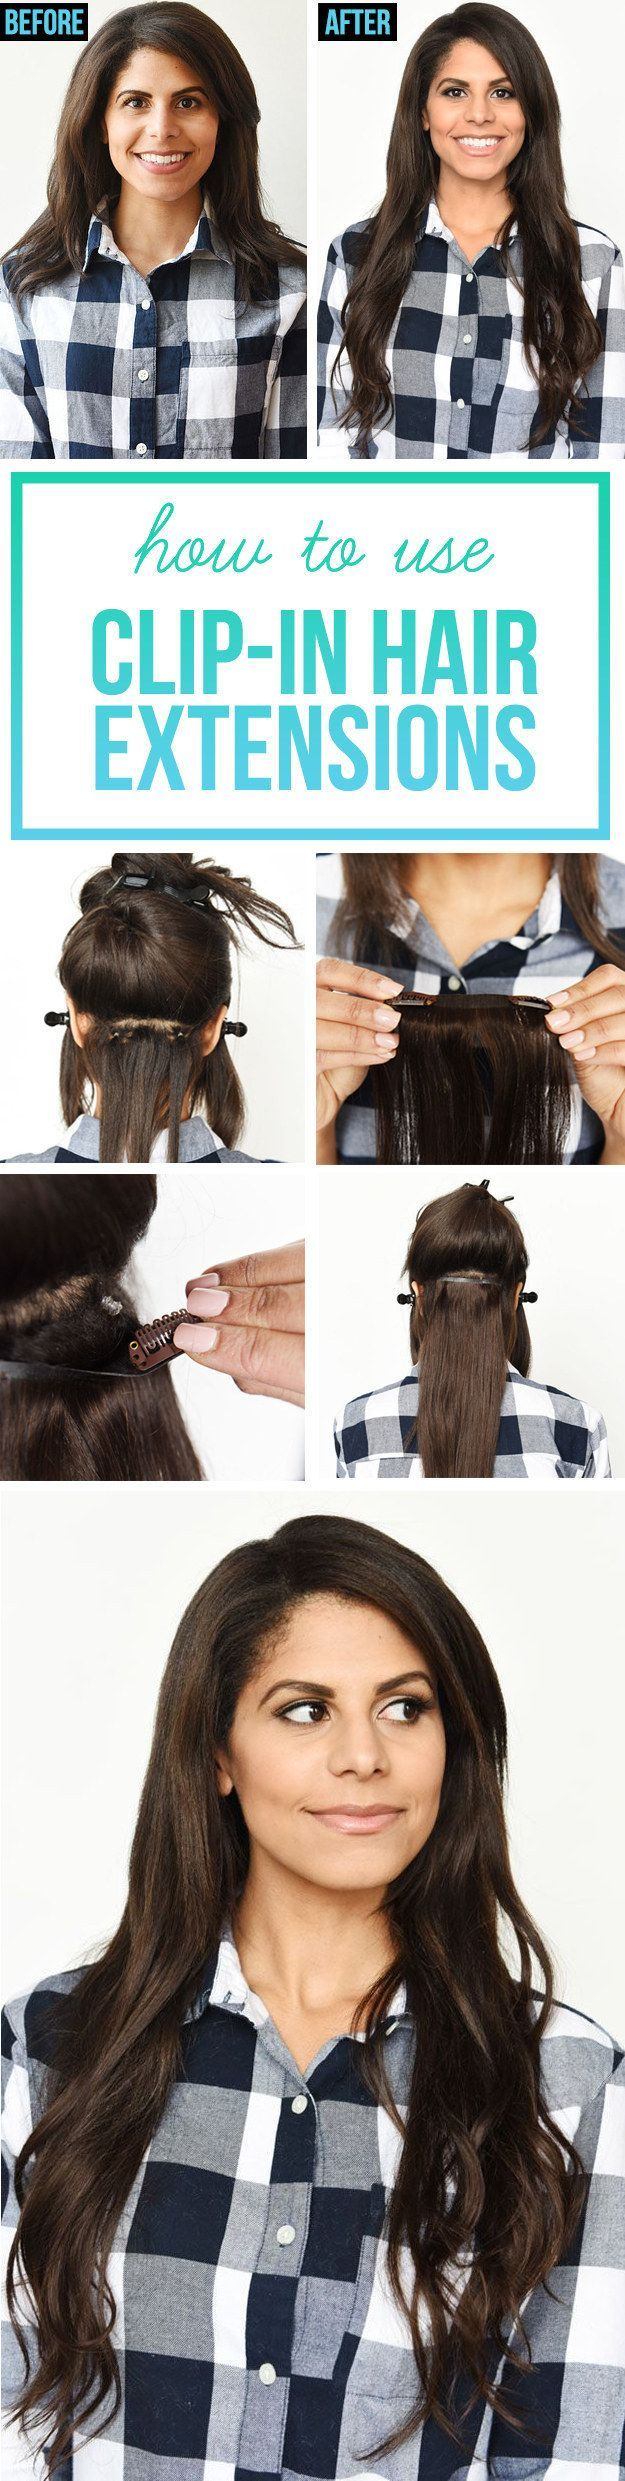 Best Instructional On Clipping In Hair Extensions Love The Small Elastic Method Works So Much Better Than Just Teasing Root Nice Job Buzzfeed